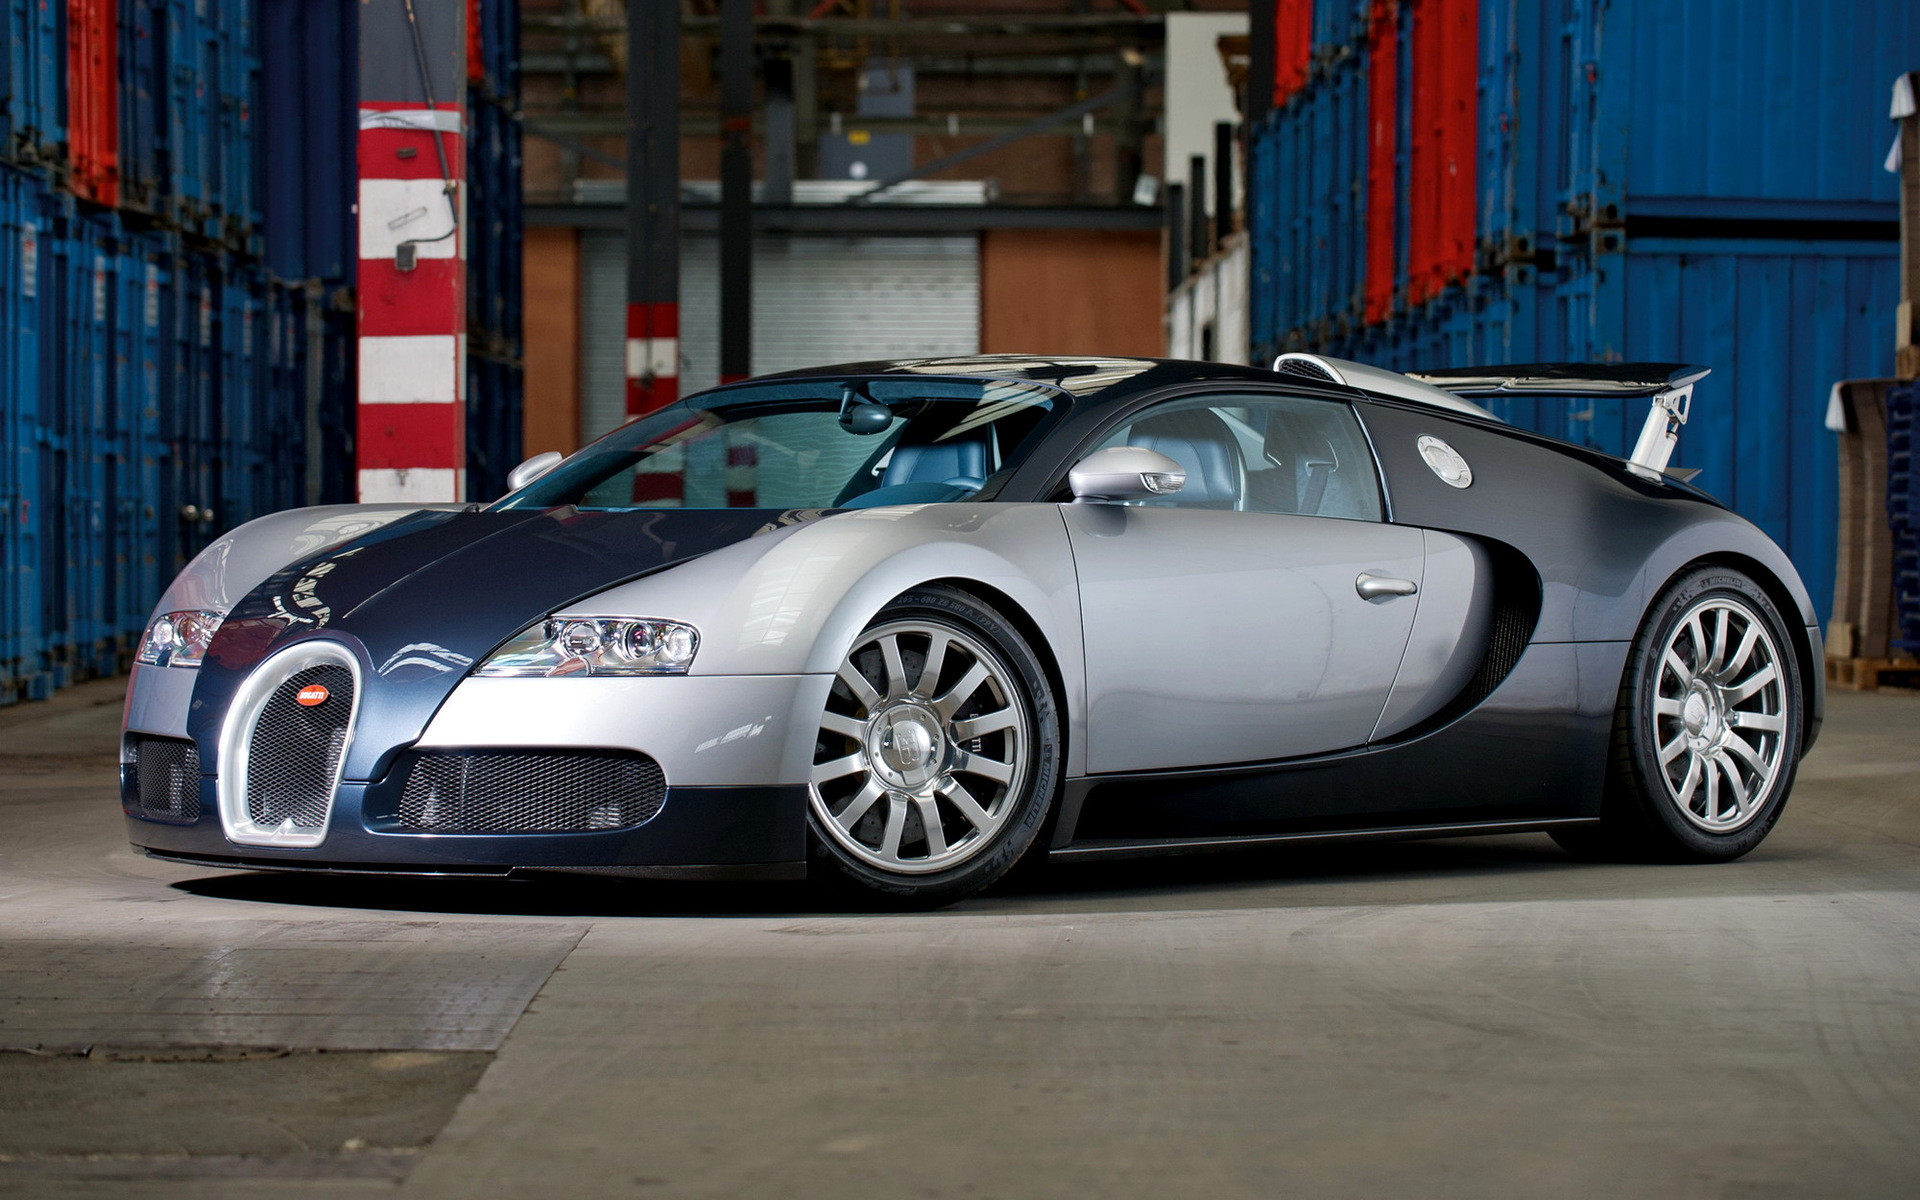 Bugatti Veyron 2005 Wallpapers And Hd Images Car Pixel HD Wallpapers Download free images and photos [musssic.tk]